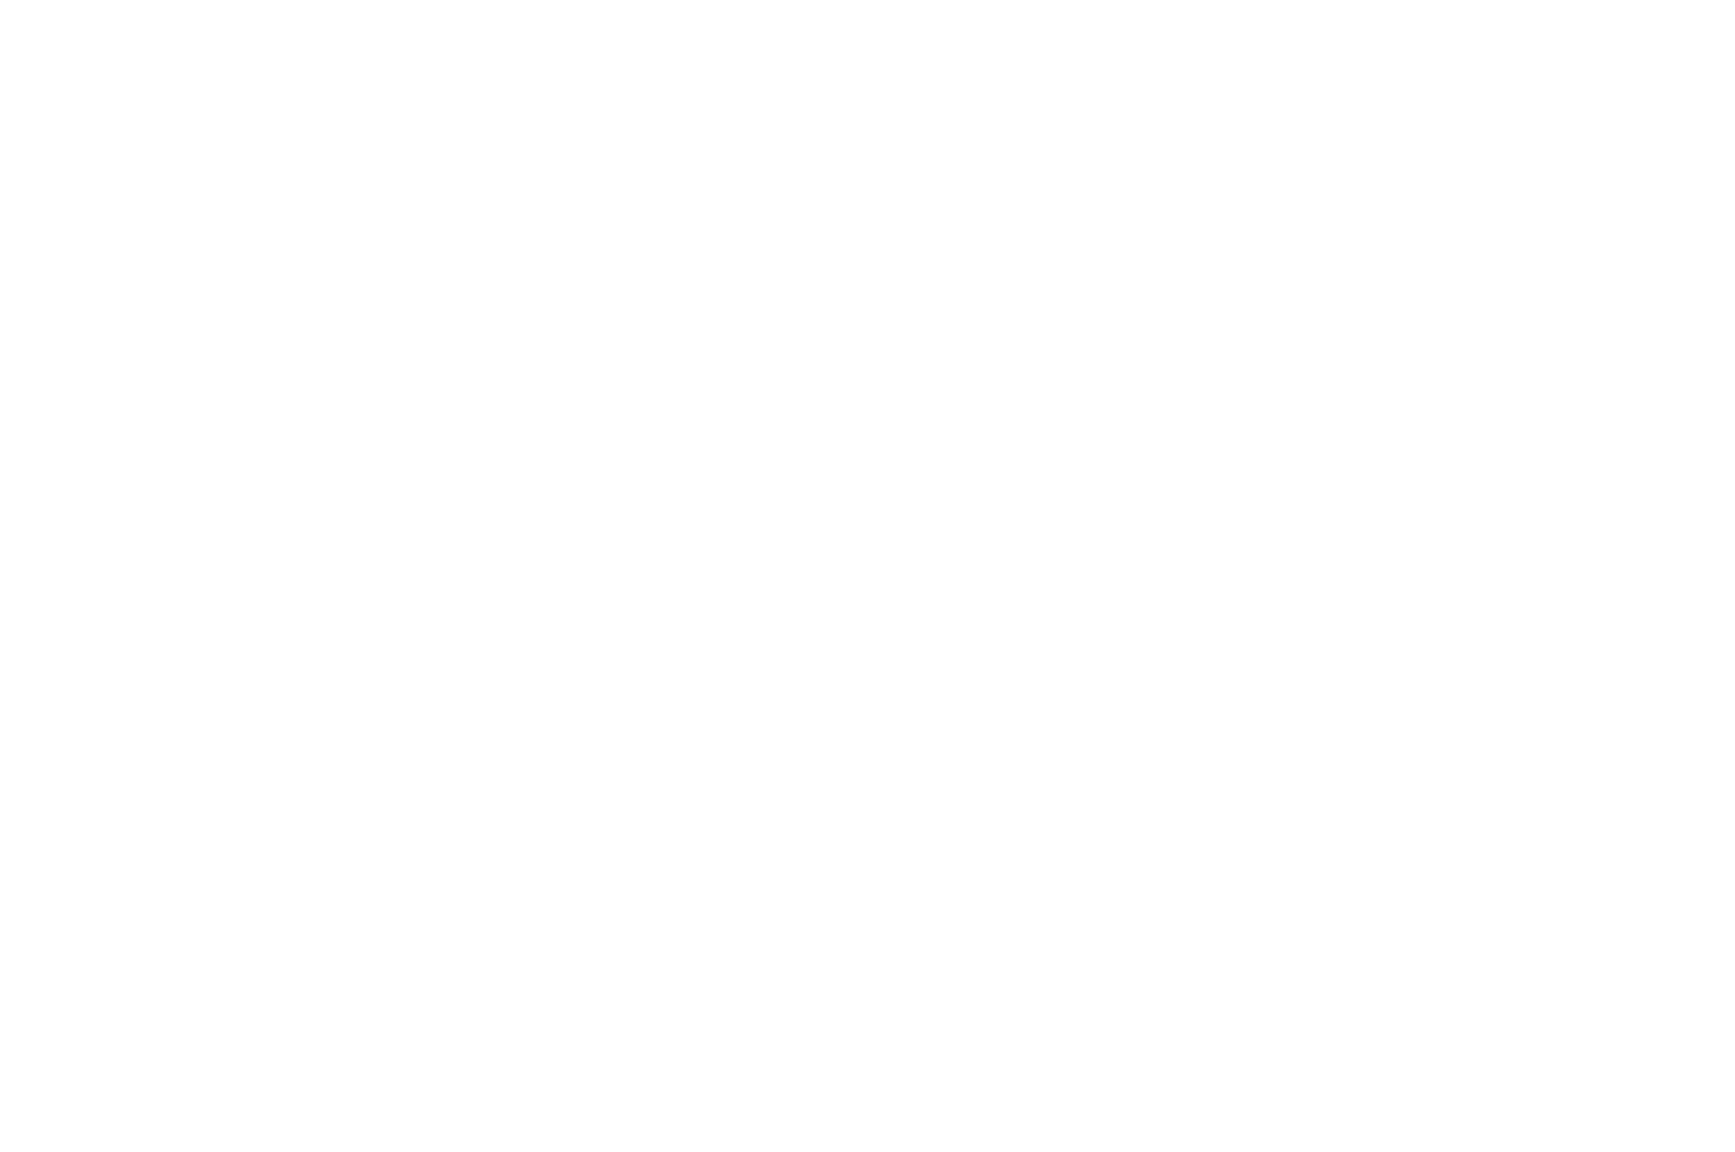 WINNER - Student Regional Emmy - Long Form.png